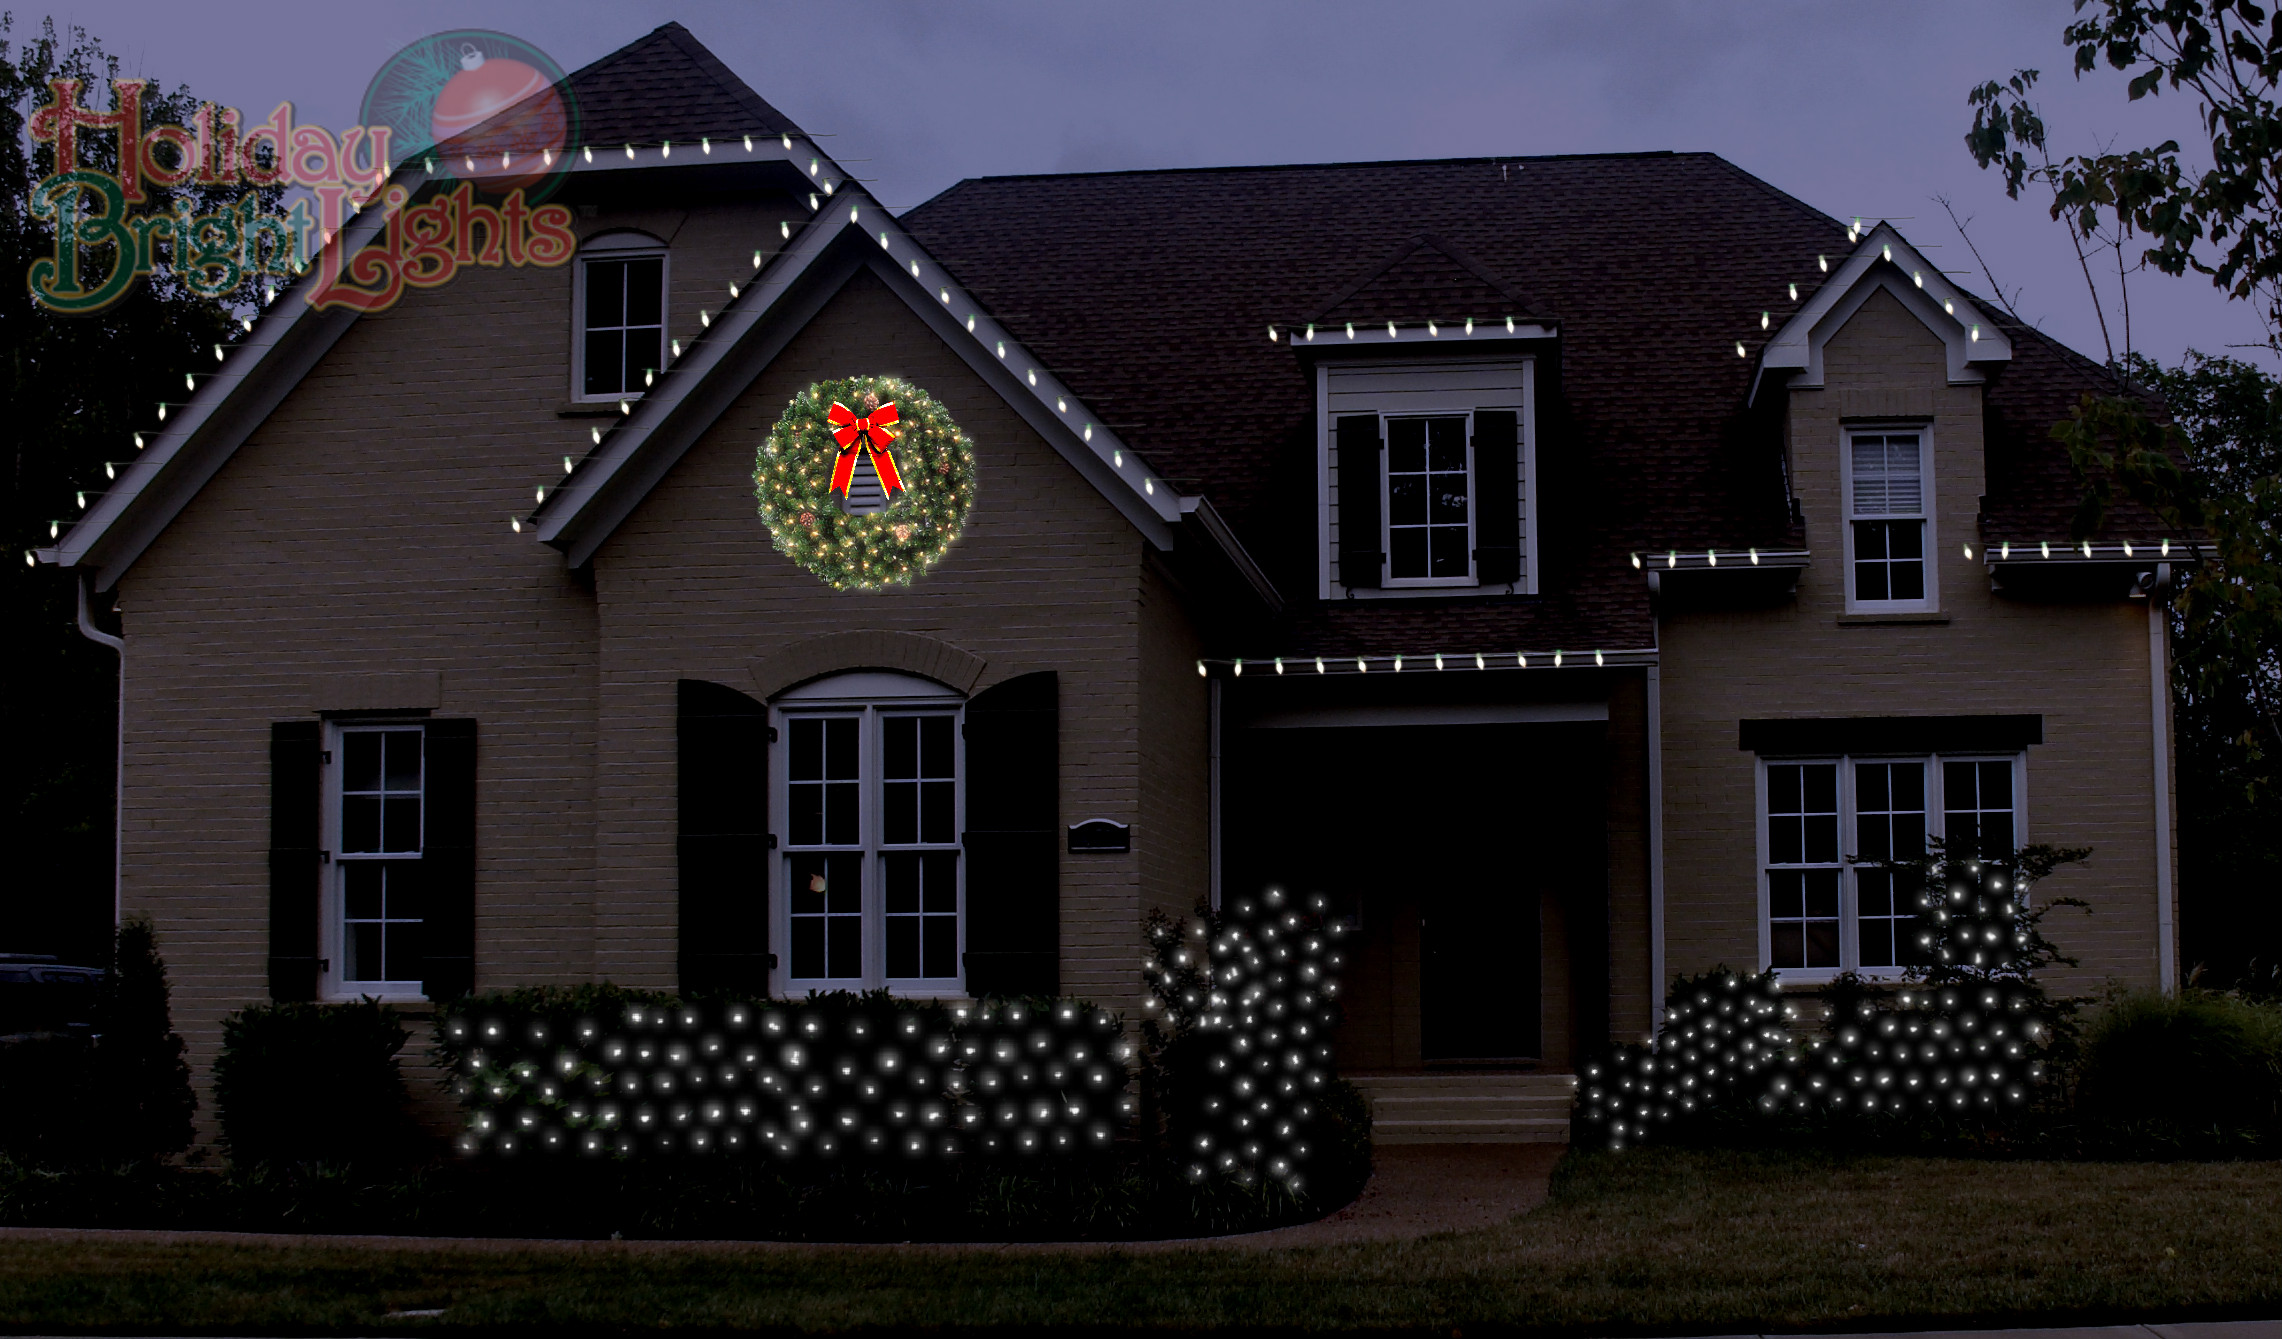 nashville holiday lighting with c9 led energy efficient outdoor christmas lights